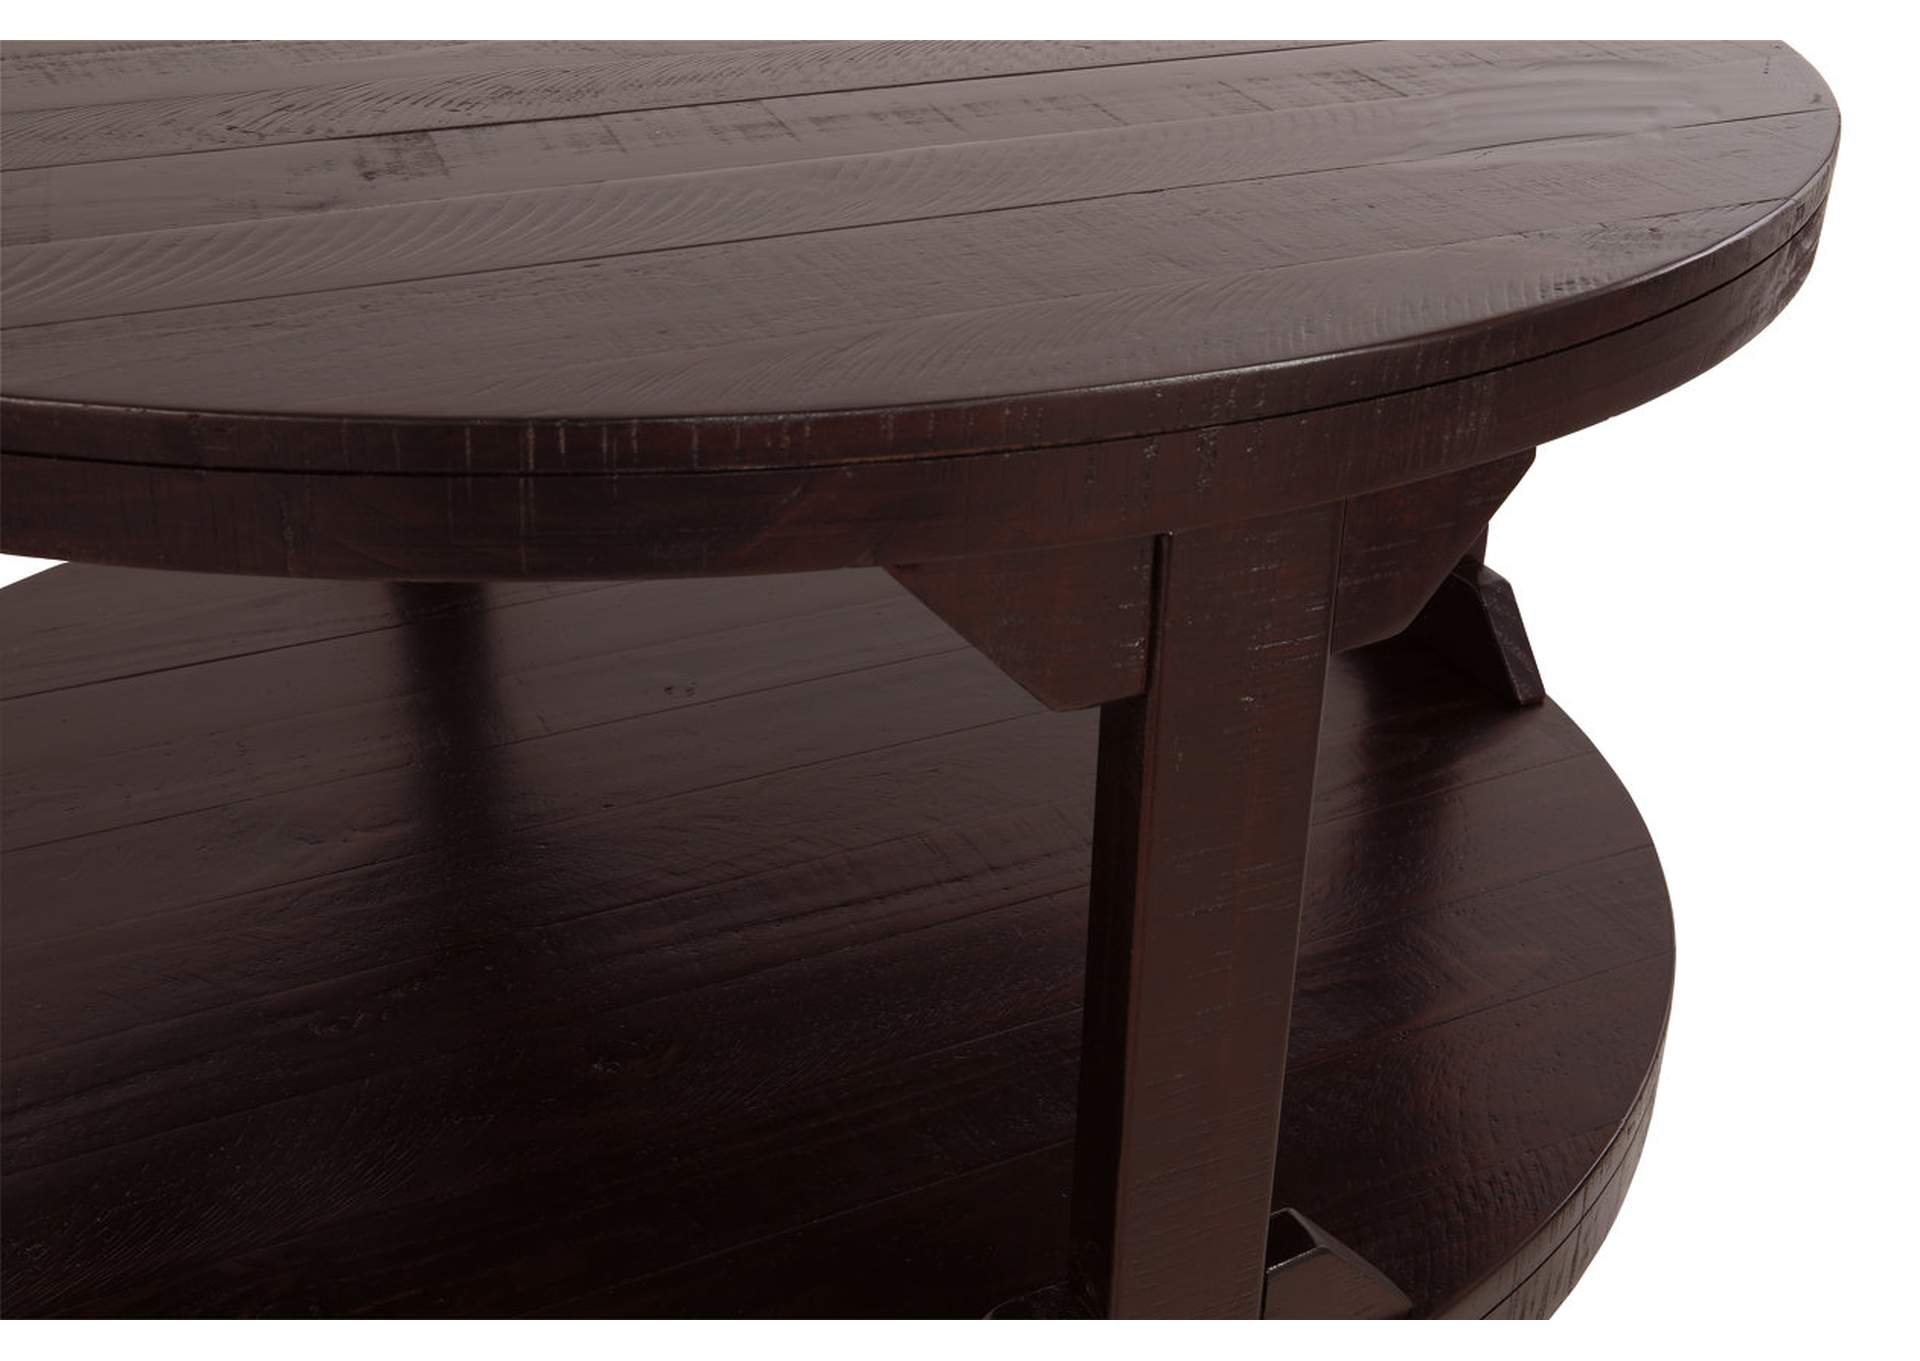 Rogness Rustic Brown Round Cocktail Table,Direct To Consumer Express